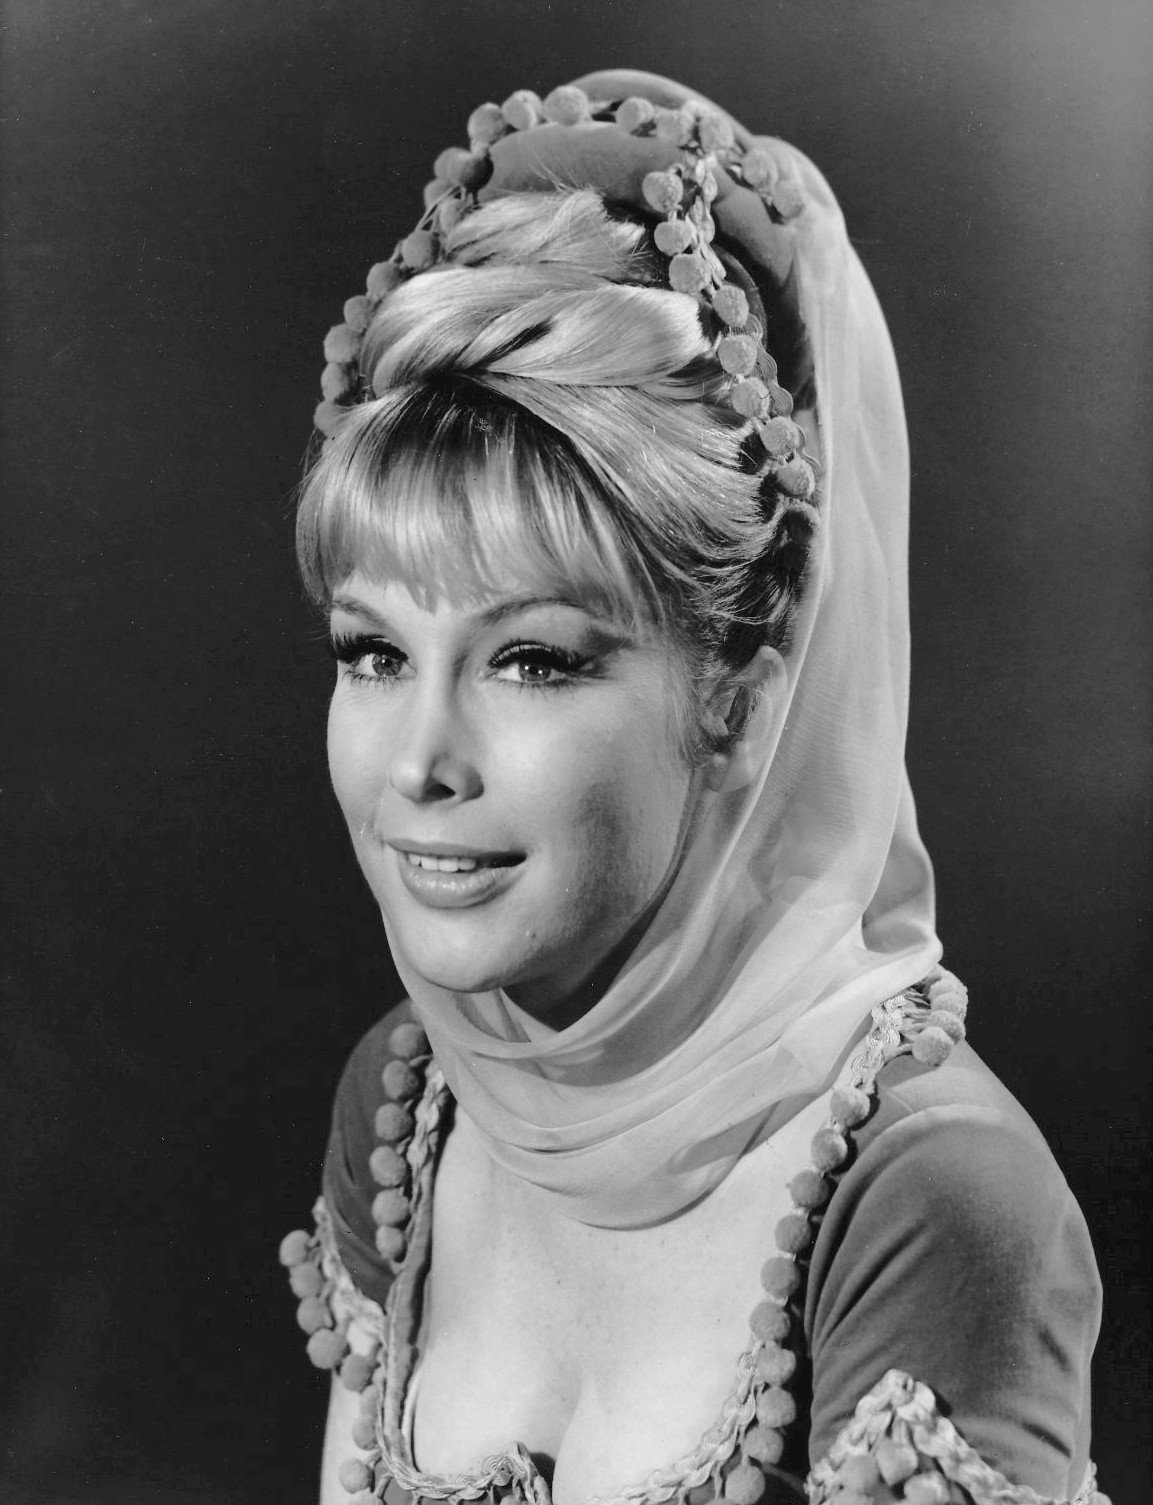 barbara eden on i dream of jeannie